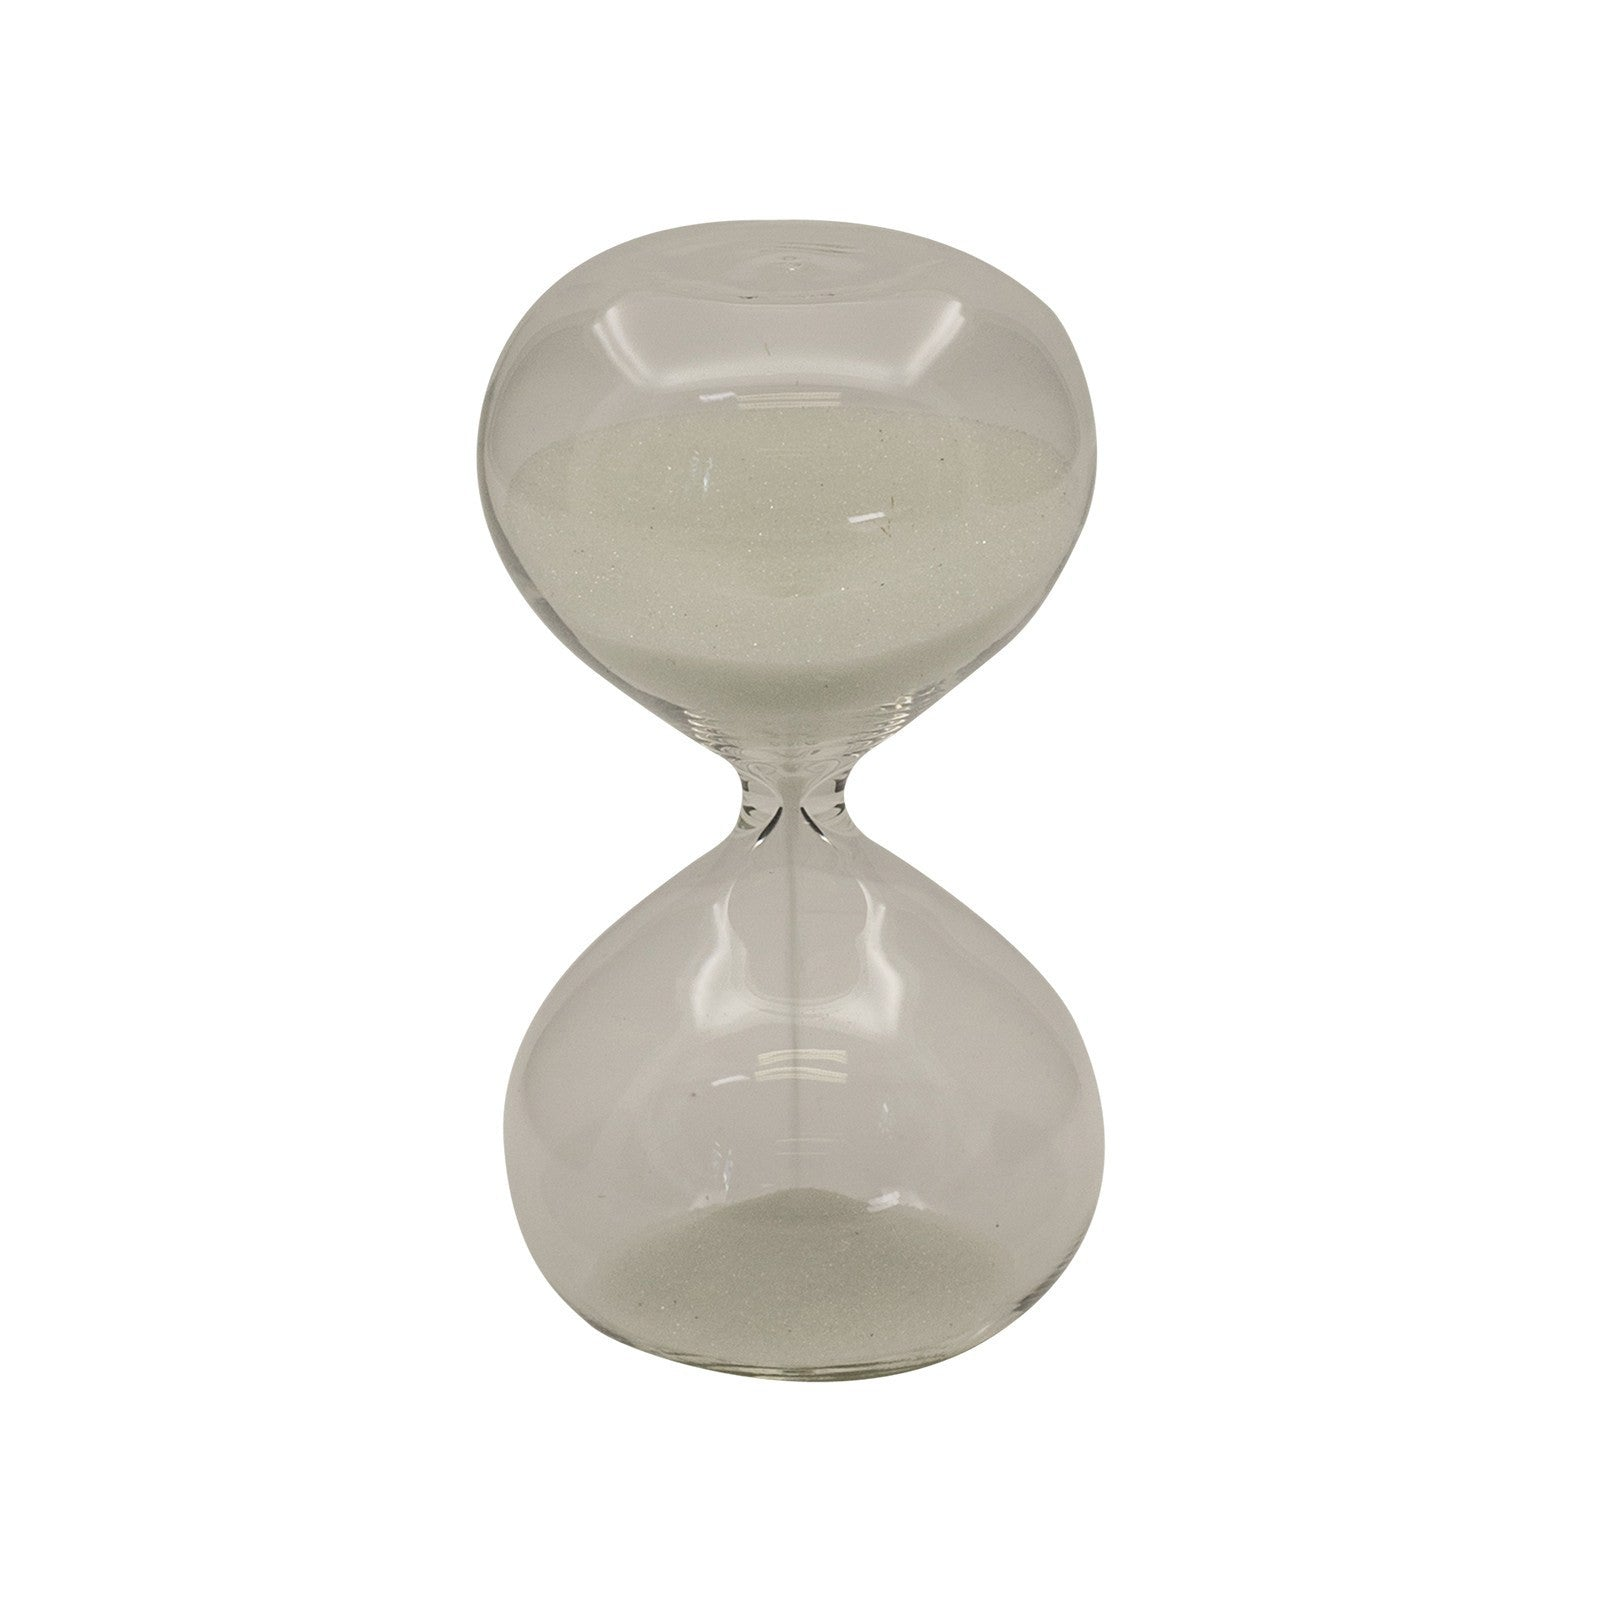 Hourglass Egg Timer, 5 minutes - Small